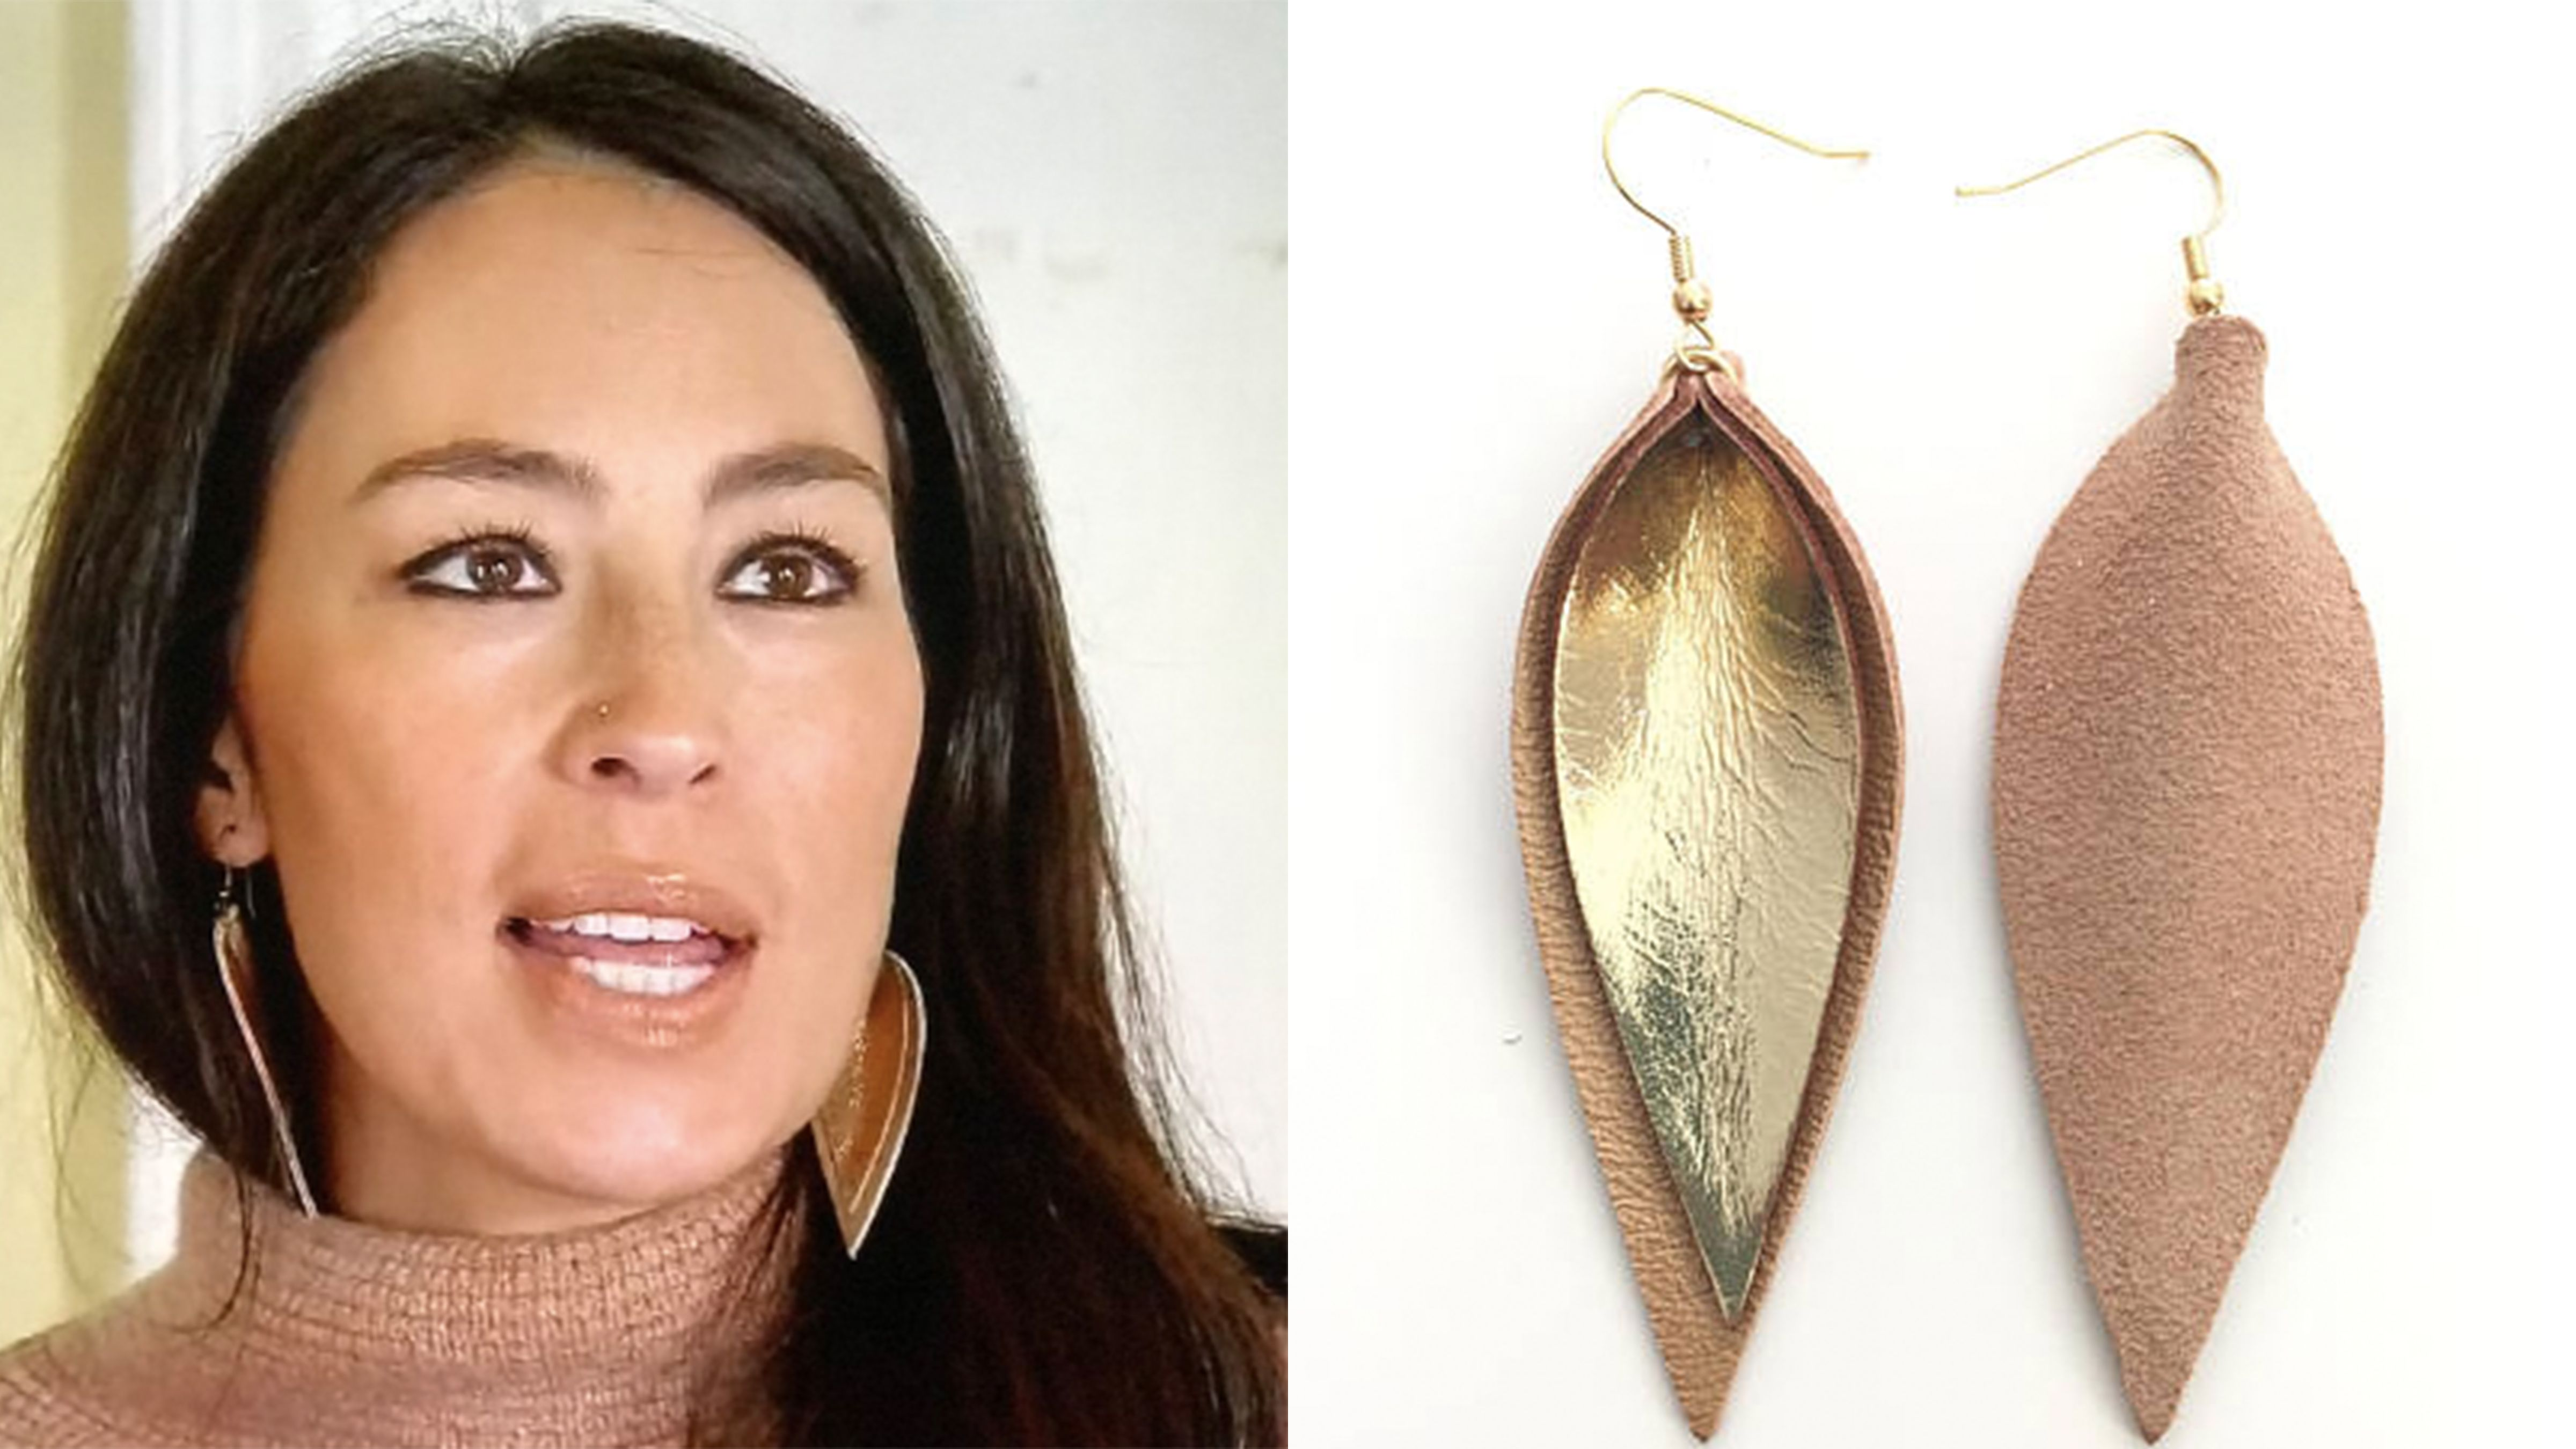 Magnolia Farms Jewelry Joanna Gaines Leather Leaf Earrings Where To Buy Leather Leaf